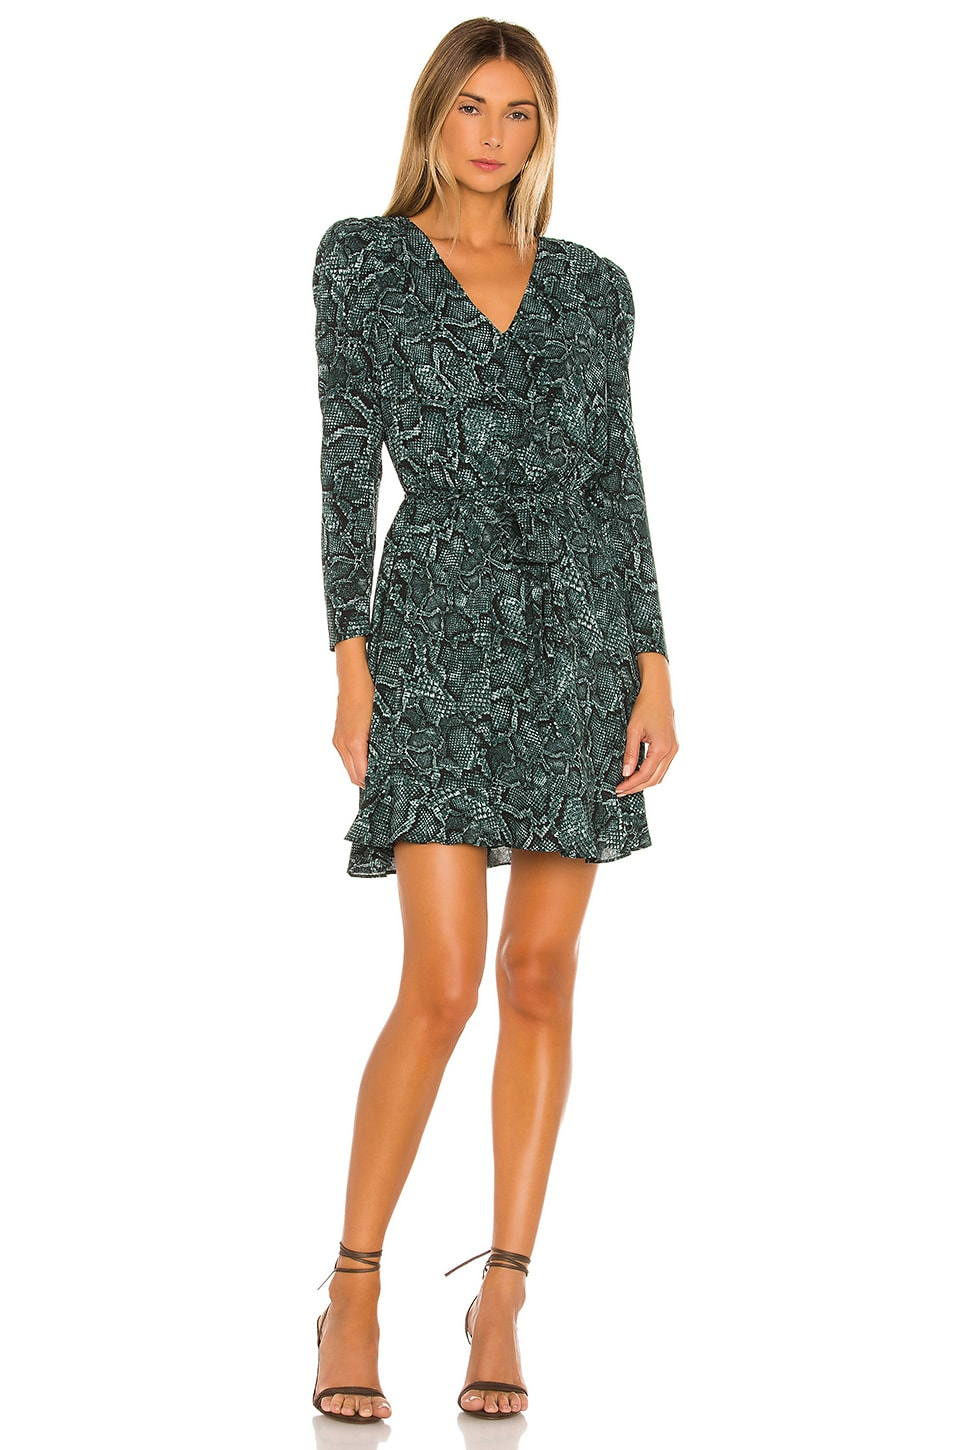 Tie Waist Snake Print Dress             1. STATE                                                                                                                                         Sale price:                                                                       CA$ 113.49                                                                  Previous price:                                                                       CA$ 174.29 14